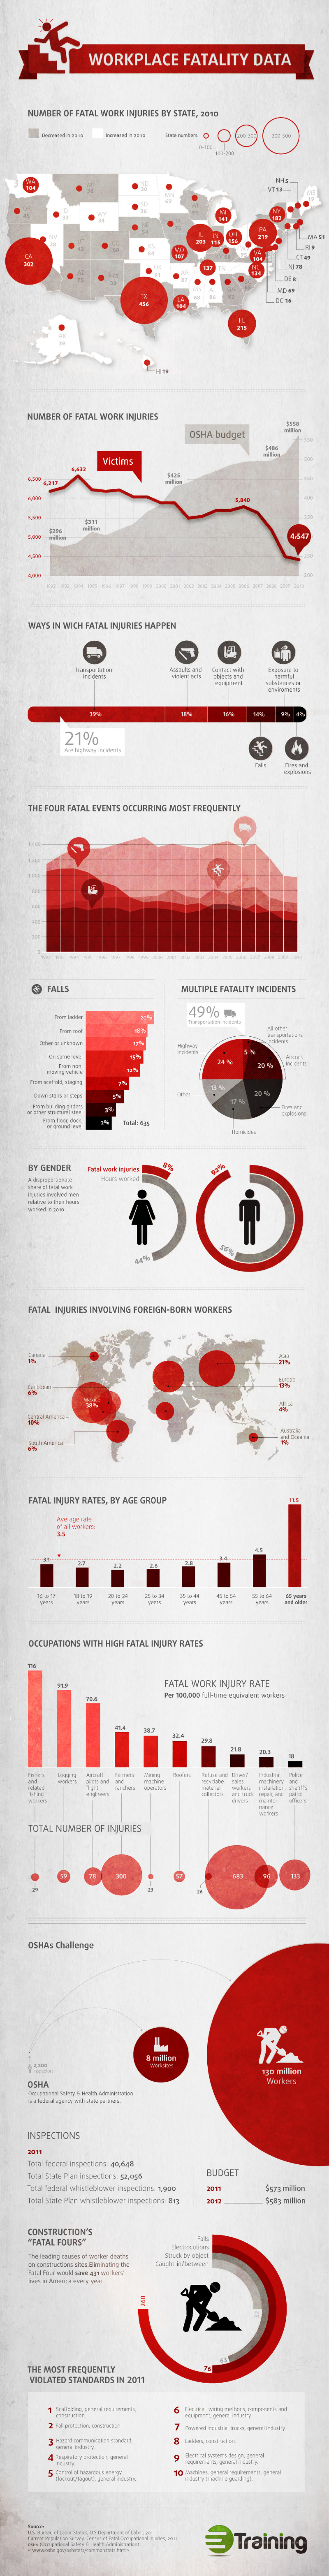 Workplace Fatality Data Infographic